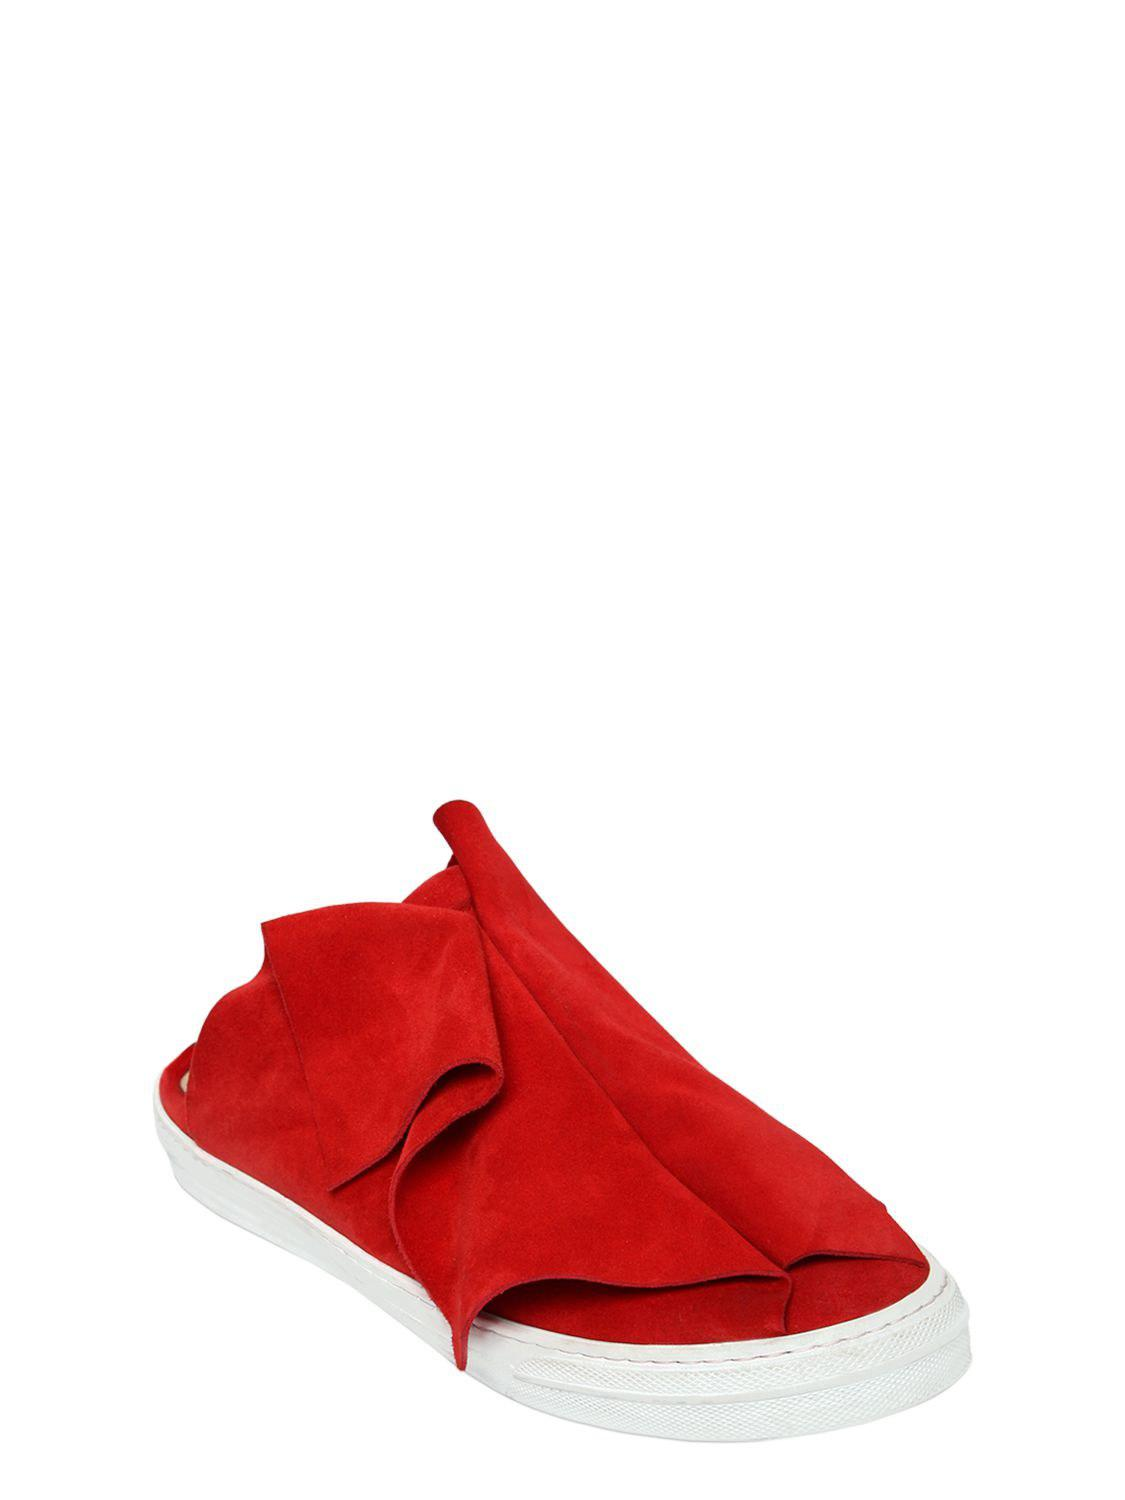 PORTS 1961 20MM LAYERED SUEDE MULE SNEAKERS Ep18vEz0Mu